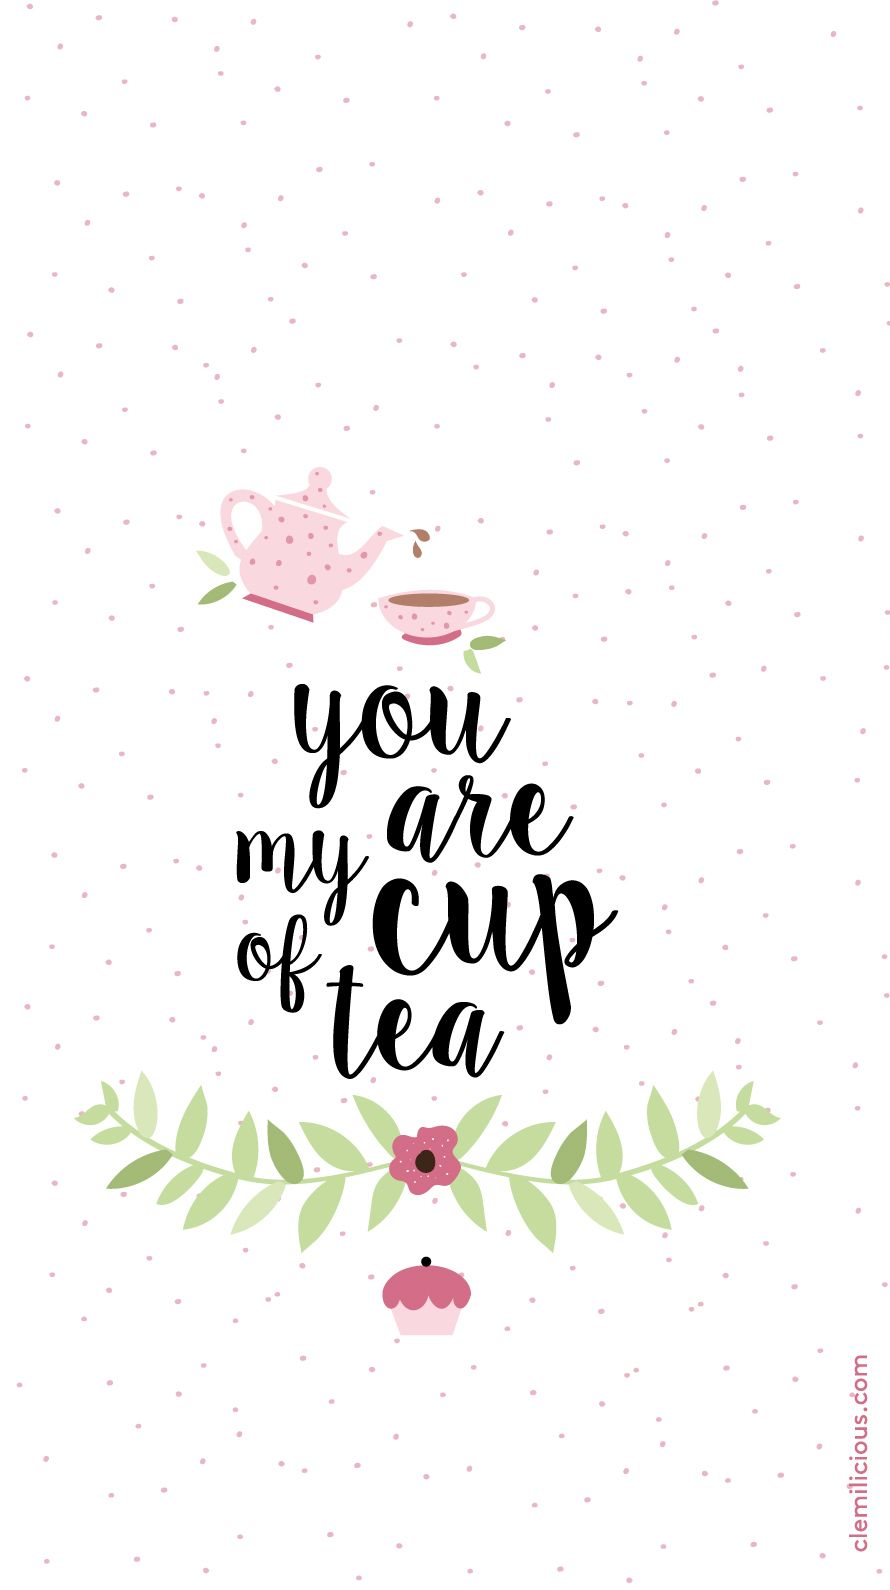 Simple Girly Teatime Iphone Lock Screen Wallpaper Panpins Iphone Wallpaper Girly Iphone Wallpaper Themes Hd Wallpaper Girly